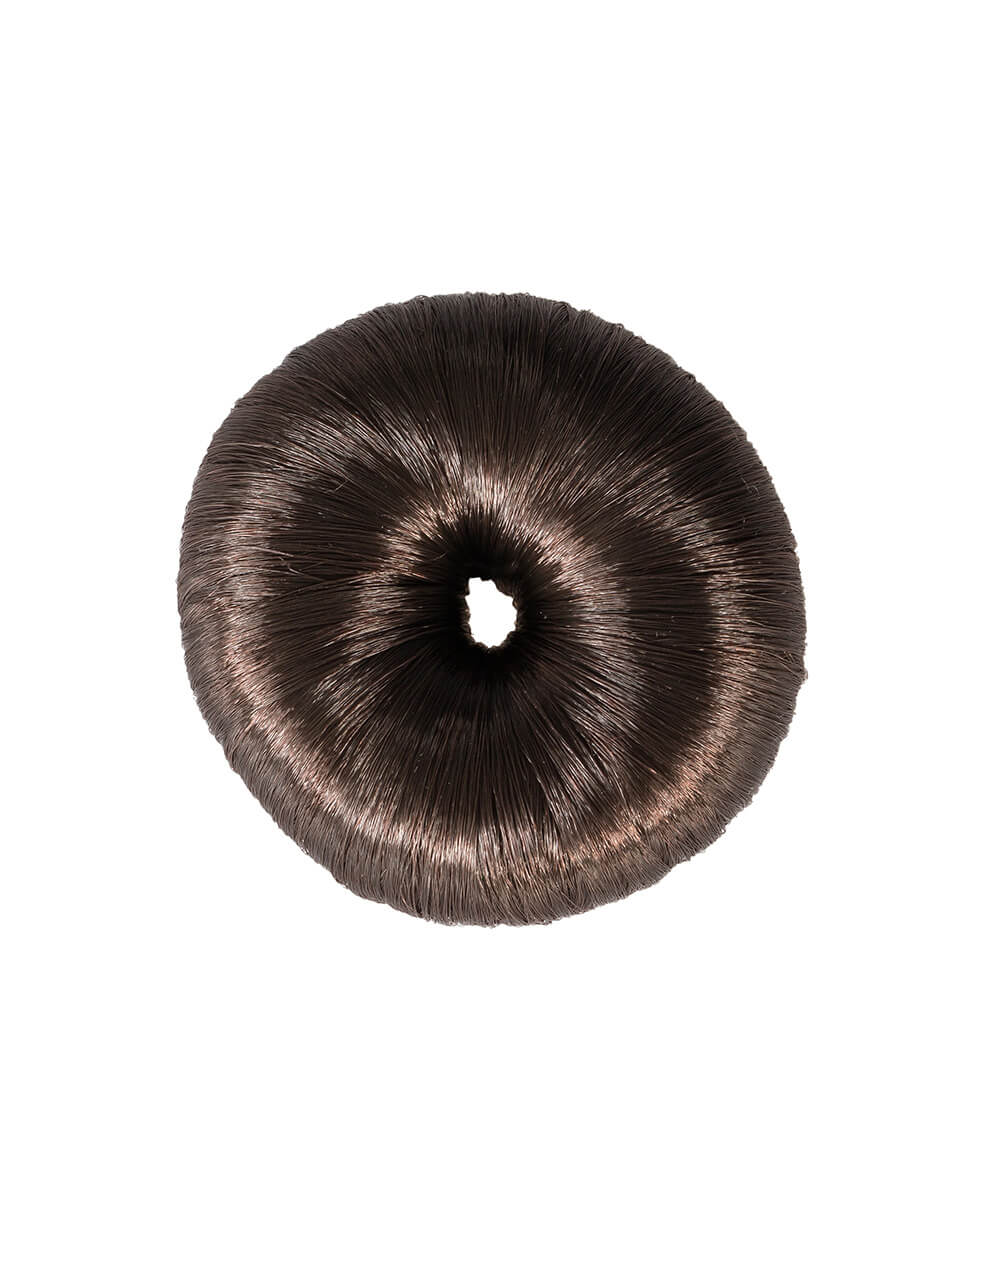 Plastic blend hair donut to make perfect hairbuns